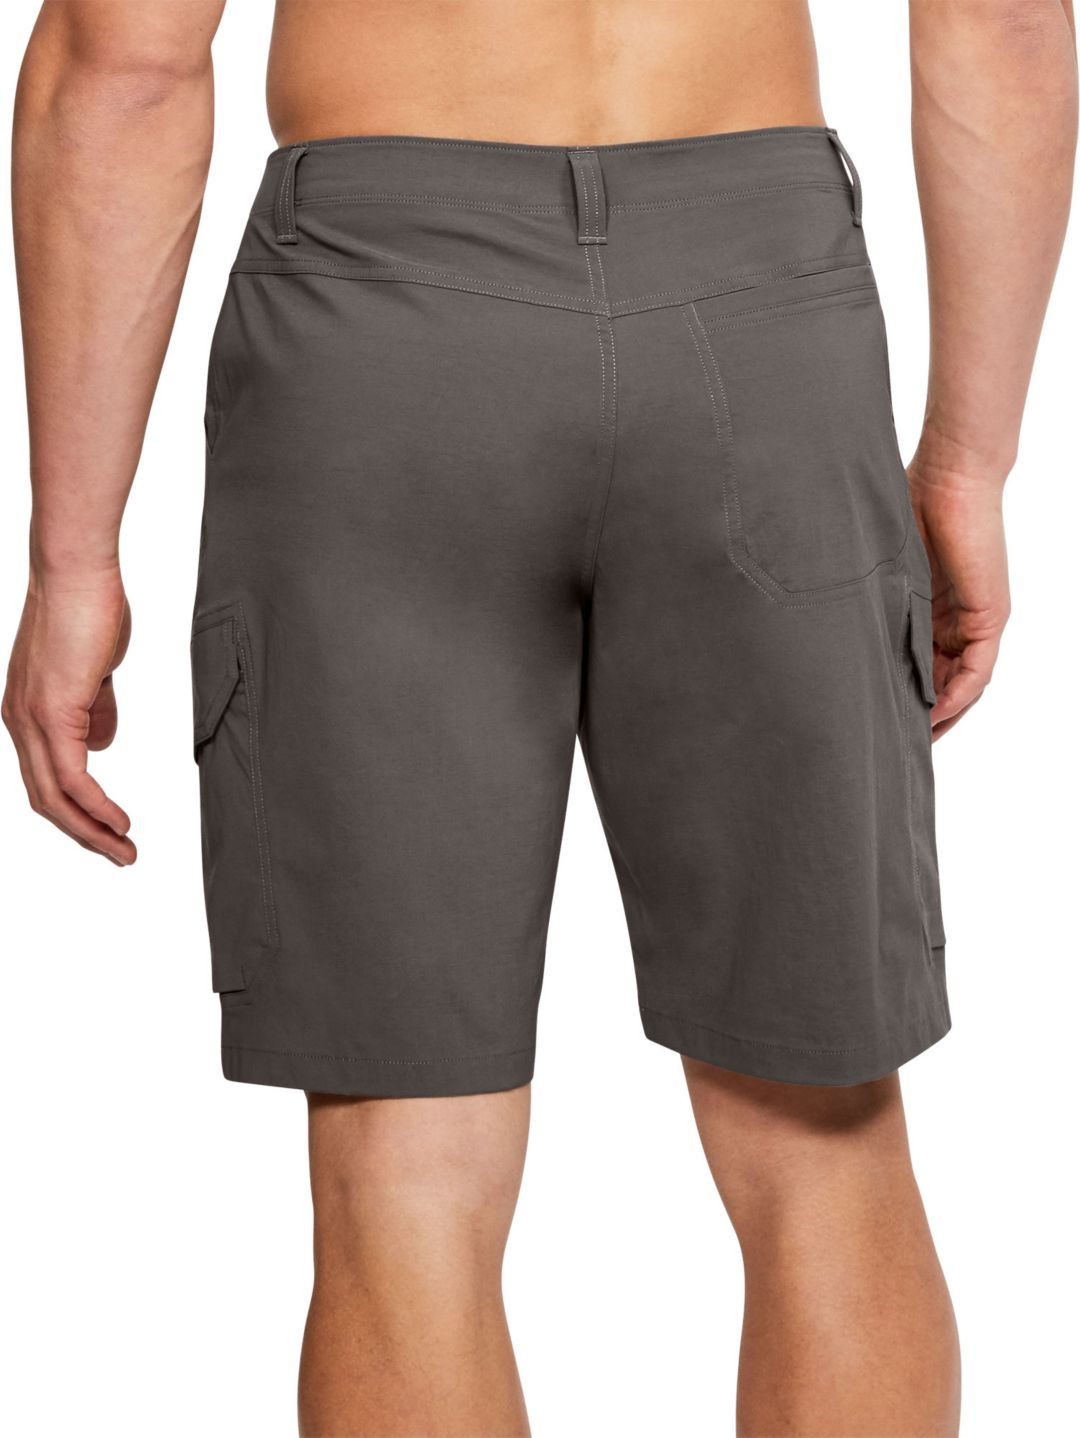 137c256c0a Under Armour Men's UA Fish Hunter Cargo Shorts | DICK'S Sporting Goods